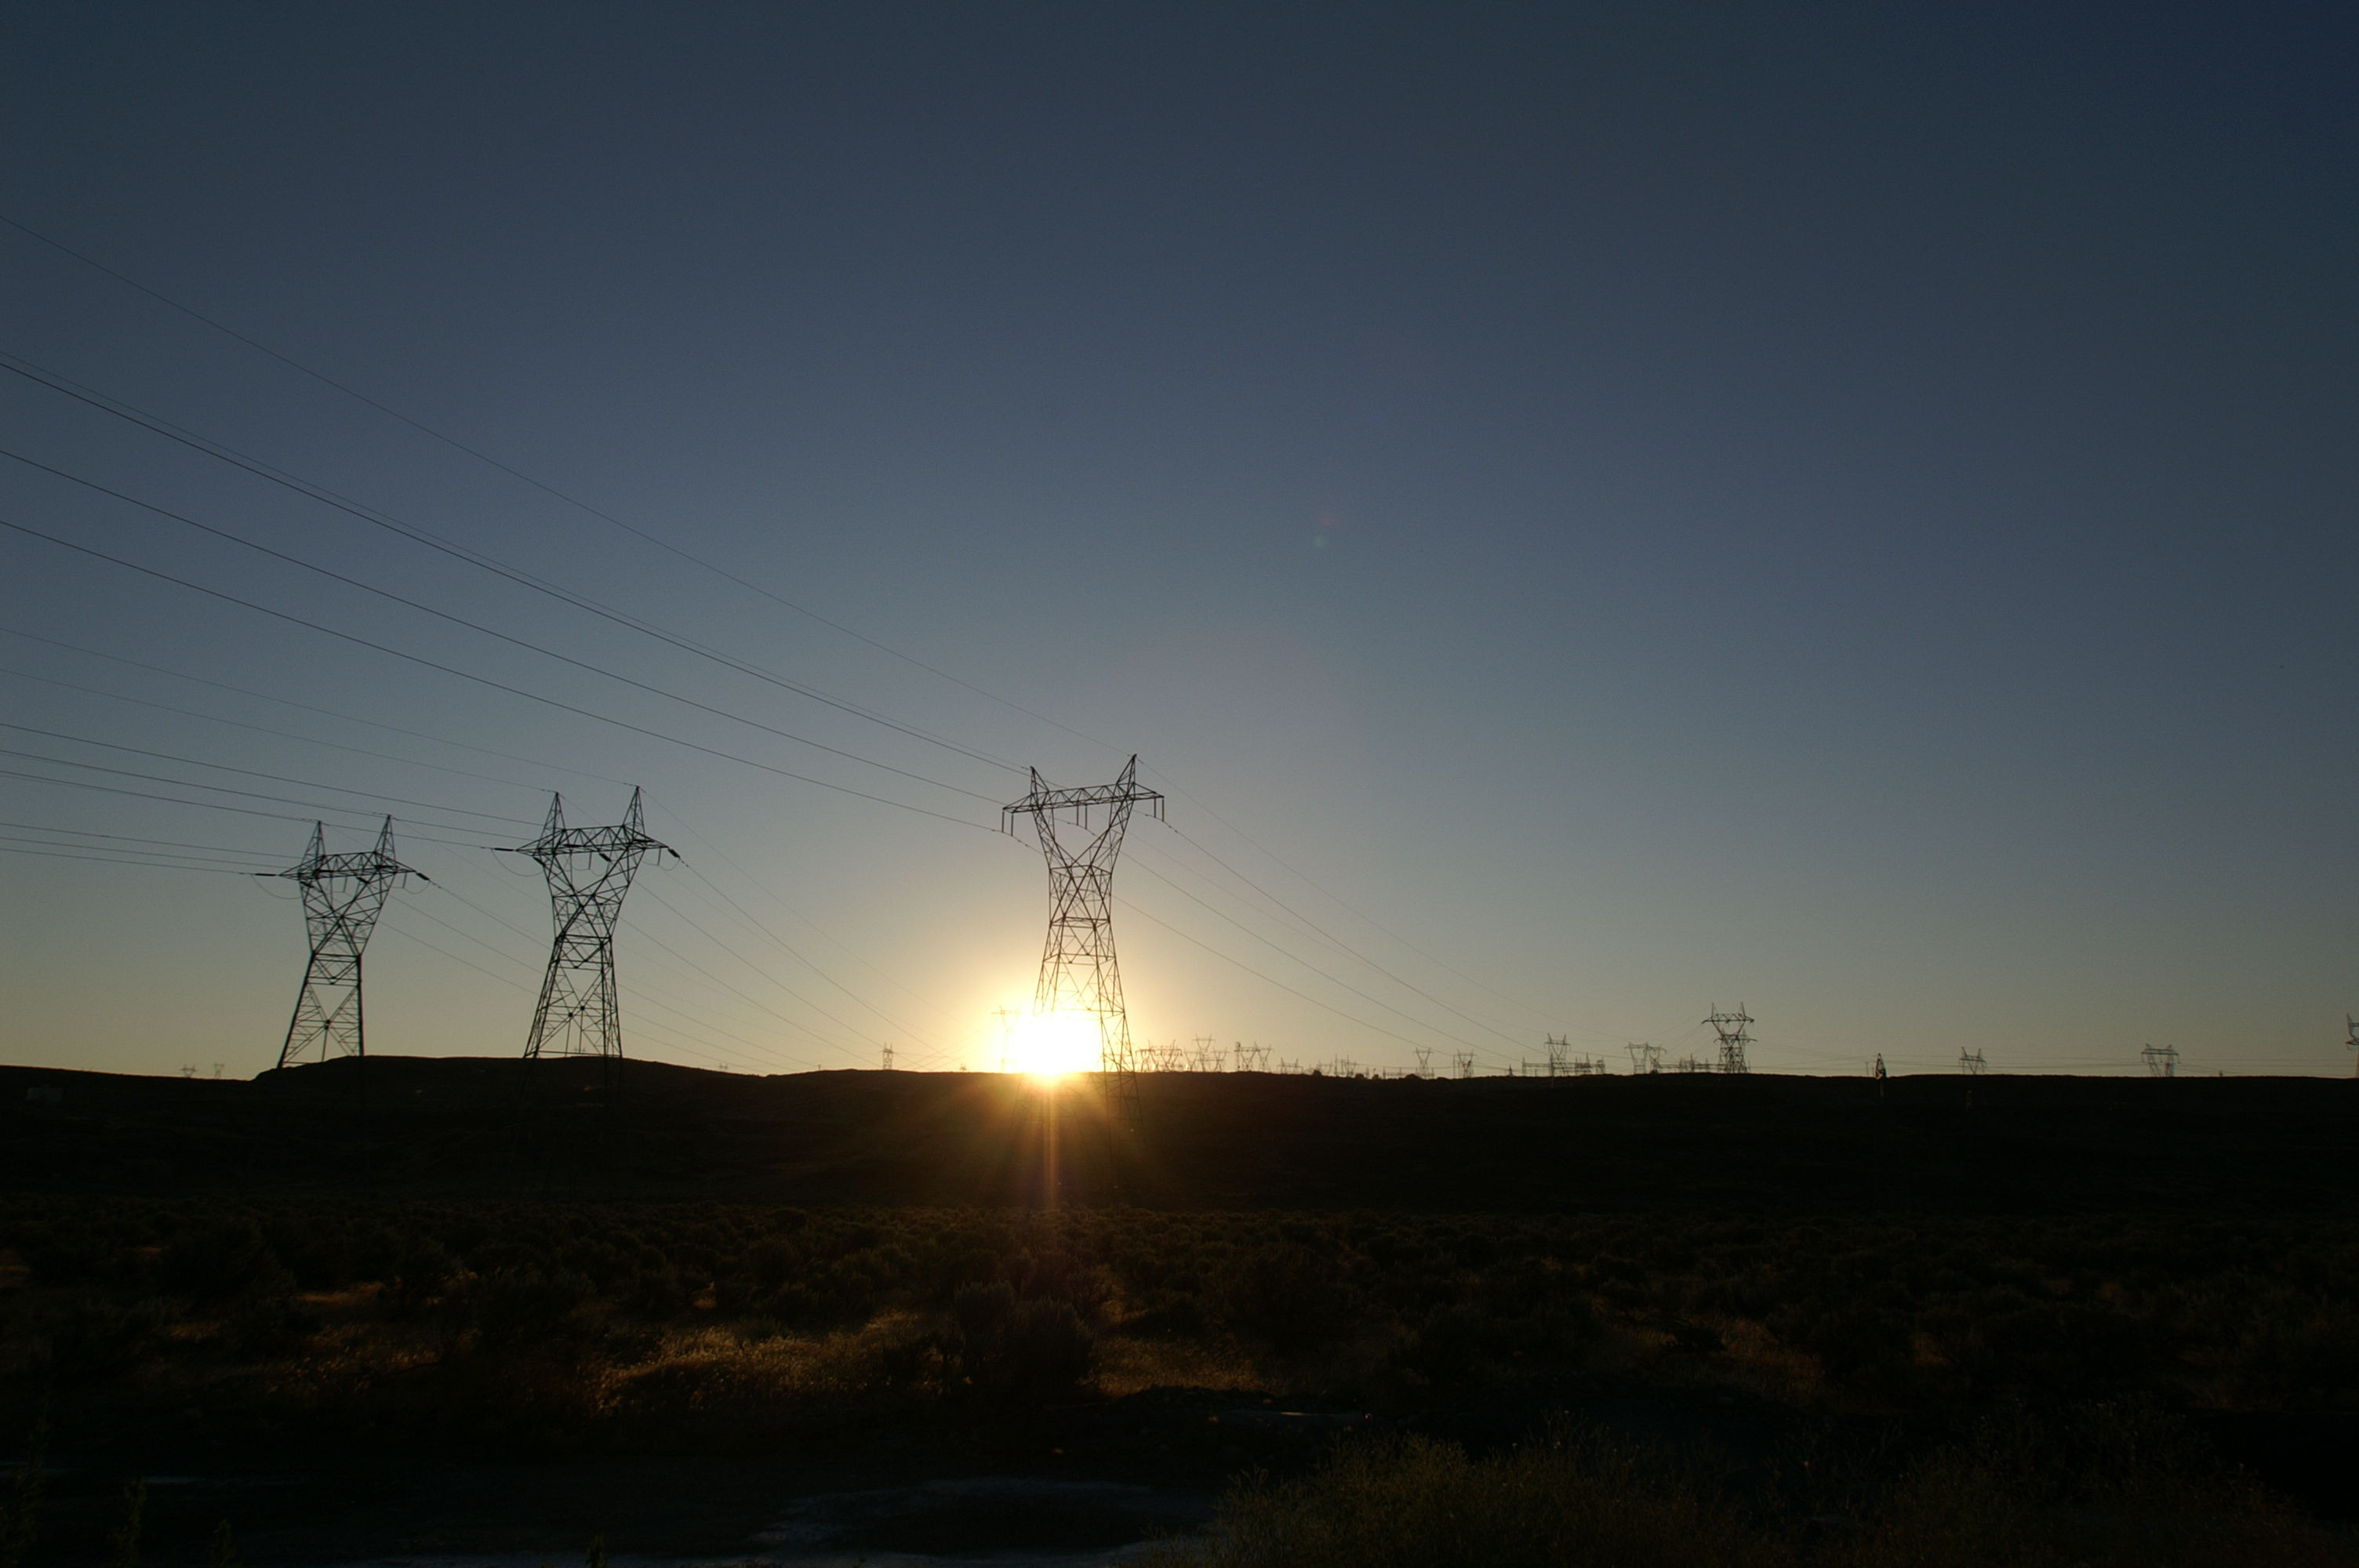 Transmission Tower - Sunset